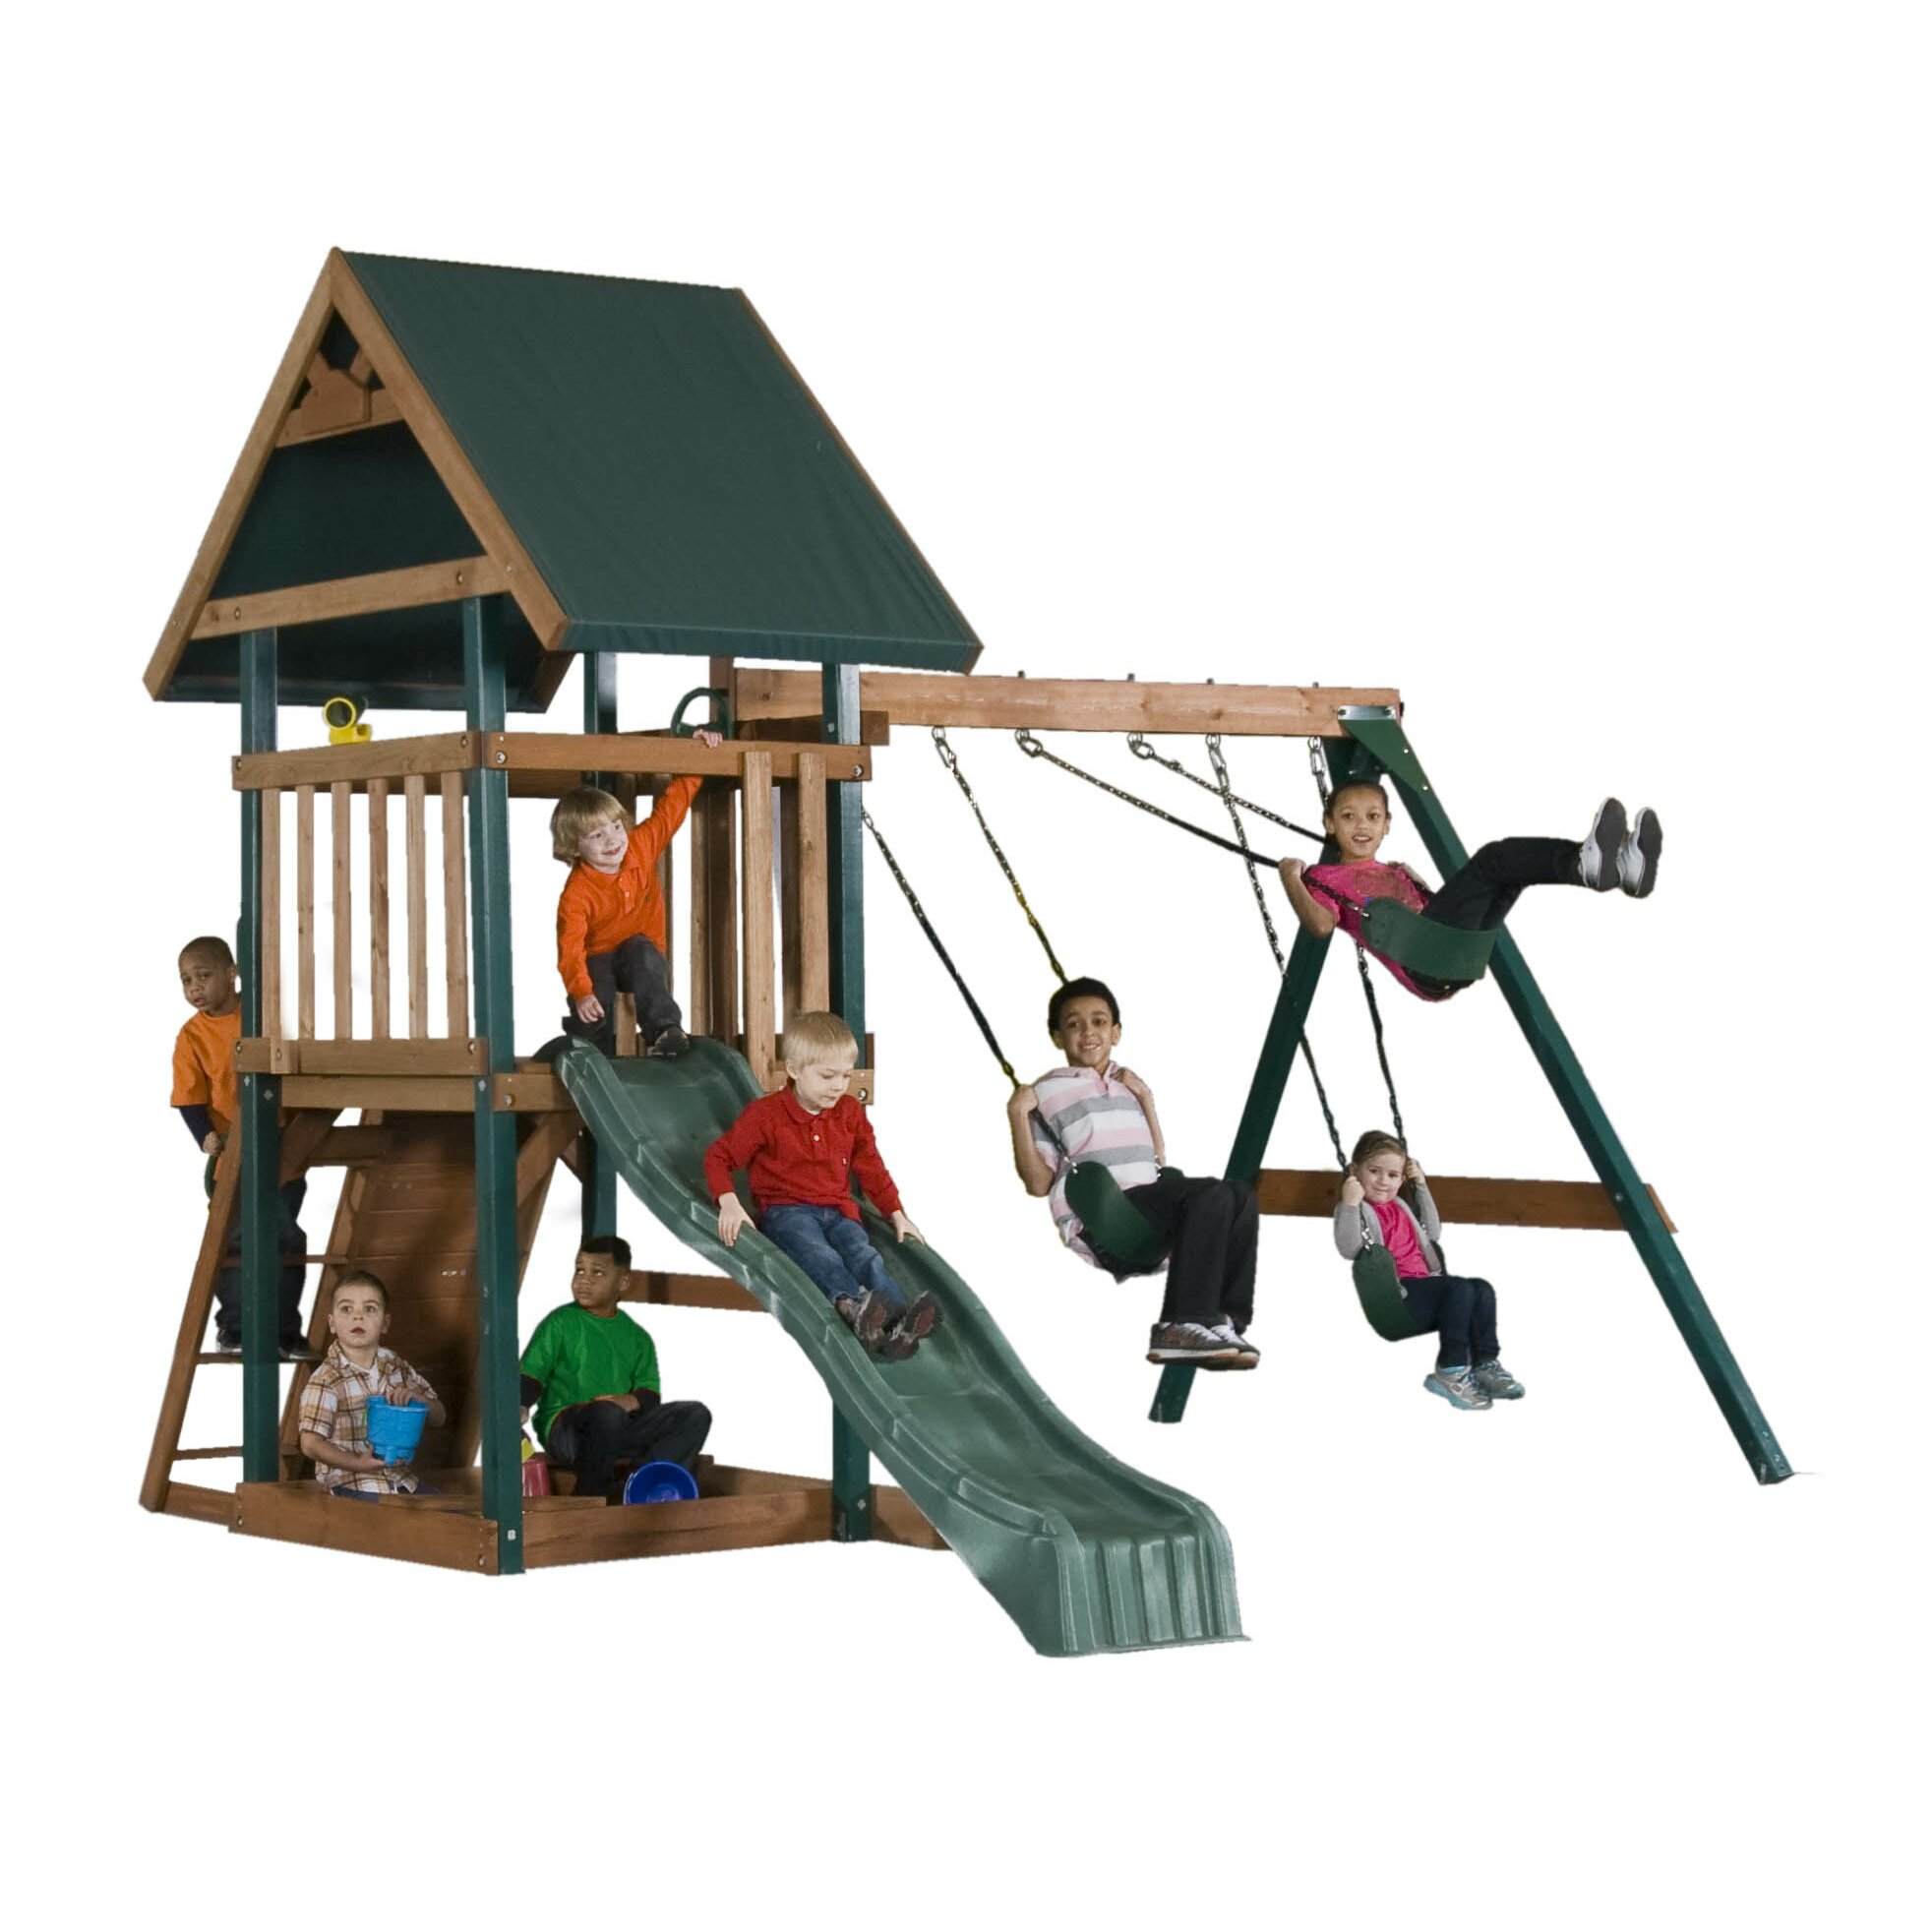 mongoose manor swing set by backyard play systems